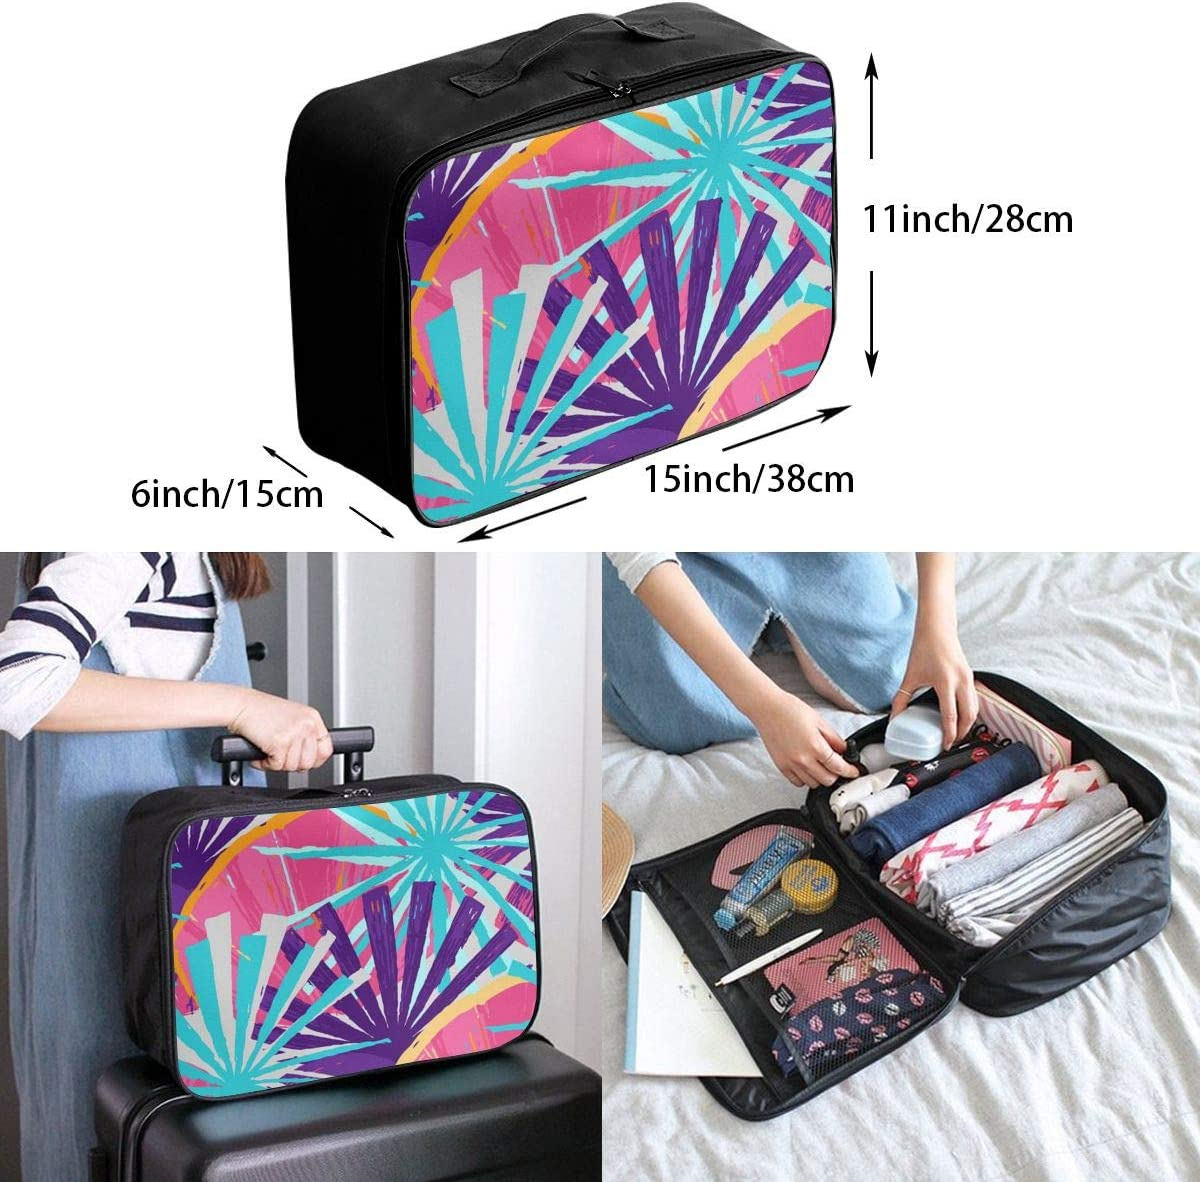 Yunshm Color Personalized Trolley Handbag Waterproof Unisex Large Capacity For Business Travel Storage